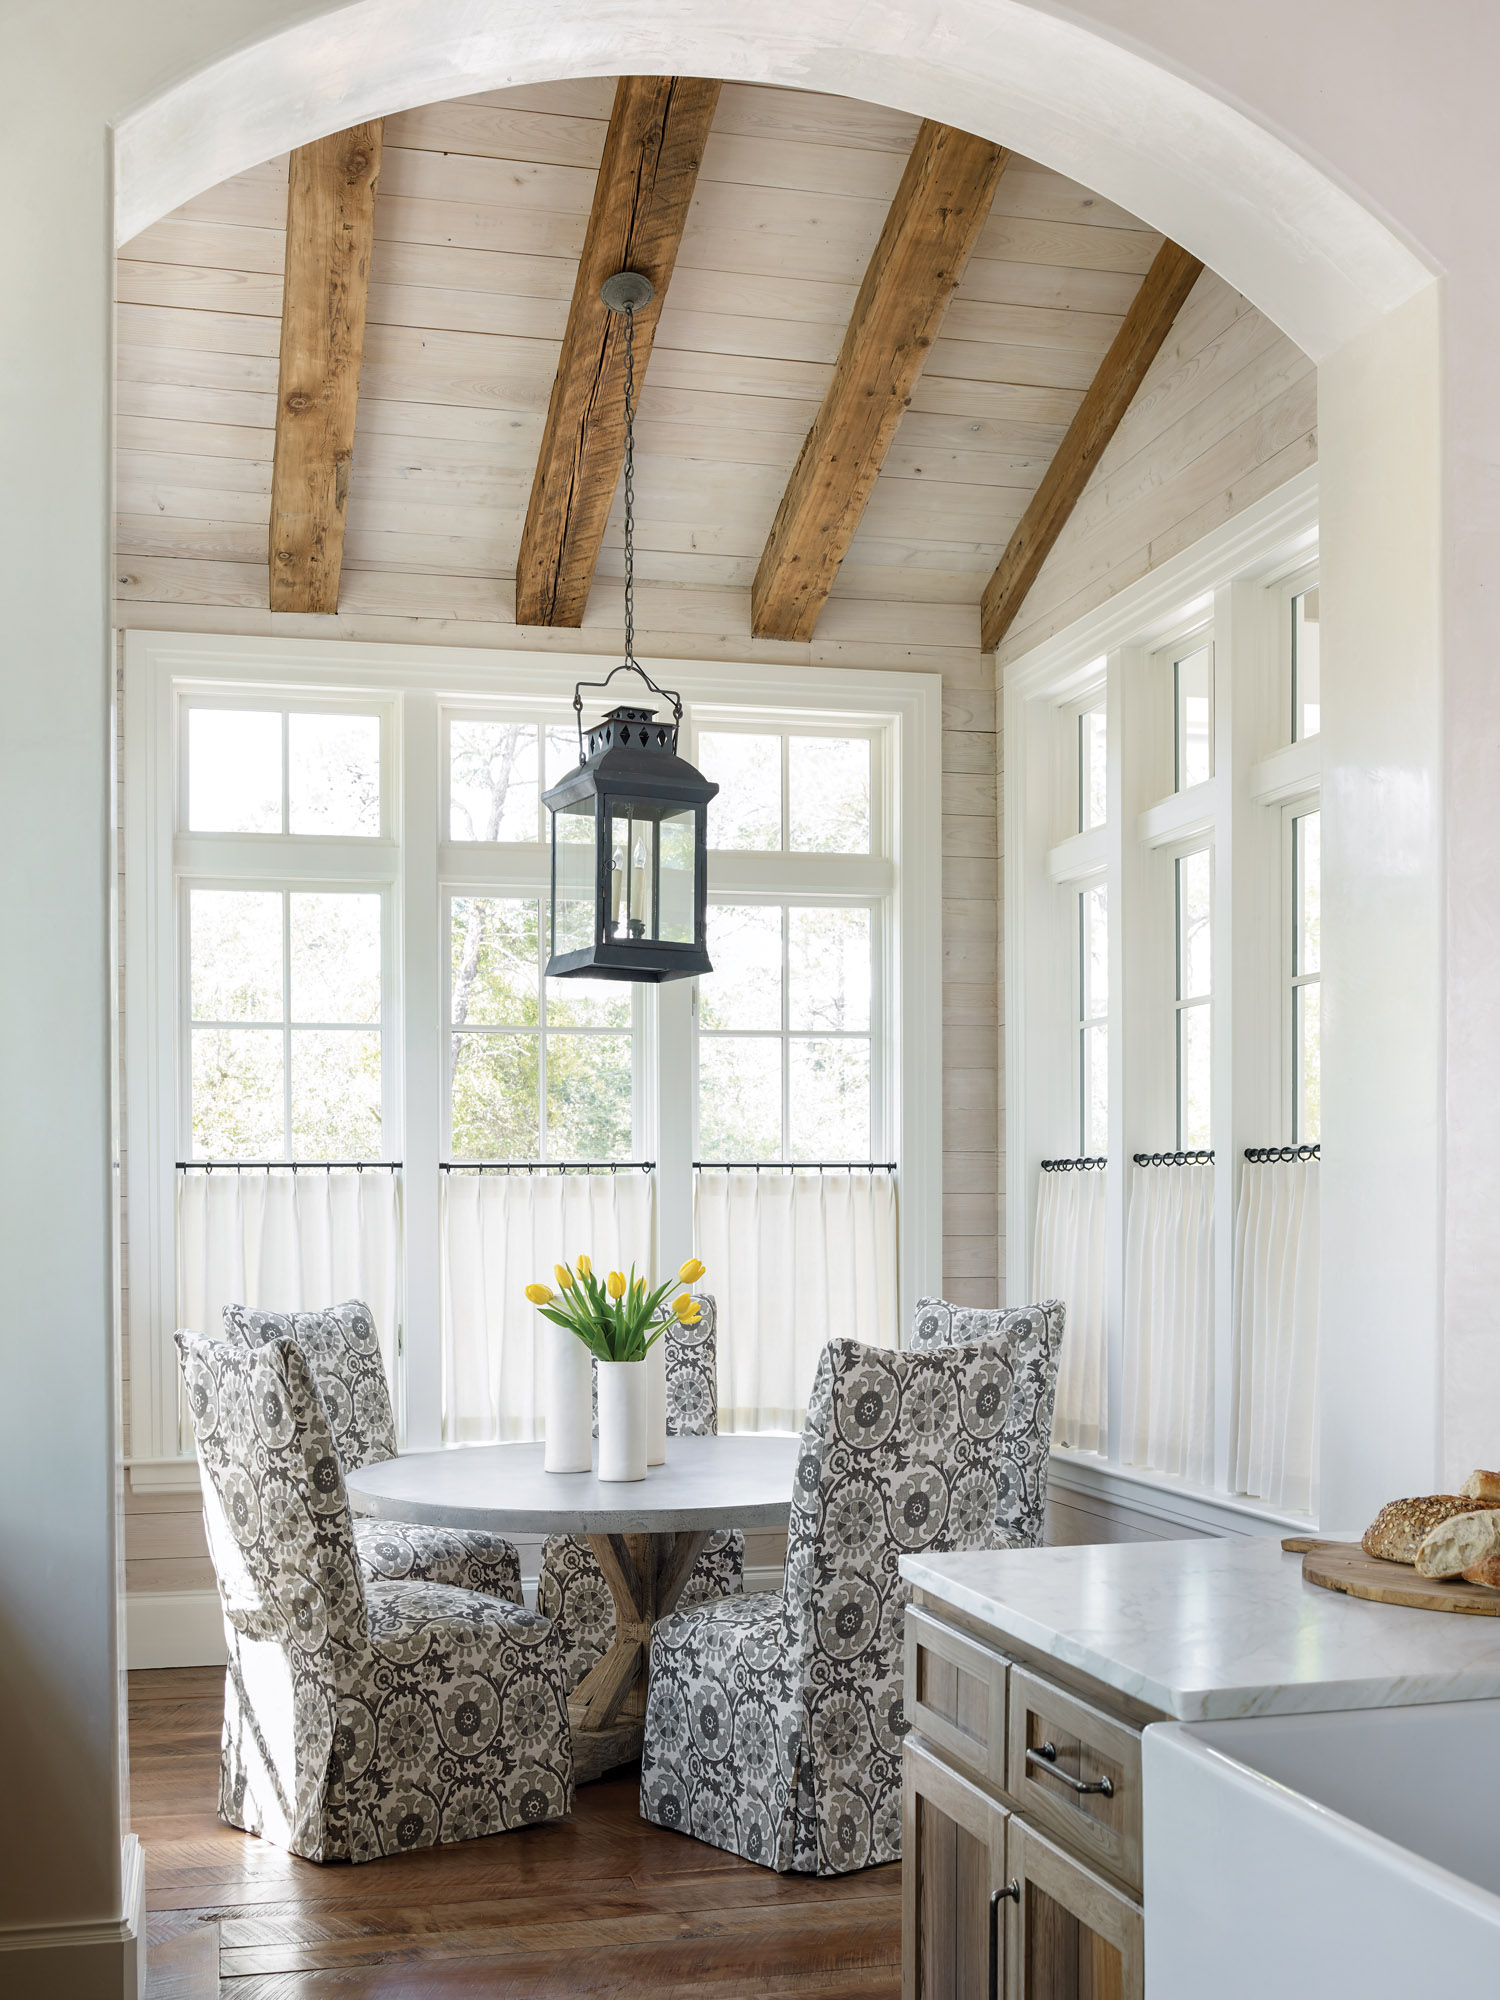 Ample natural light and an abundance of reclaimed wood keep the the space feeling warm and bright.